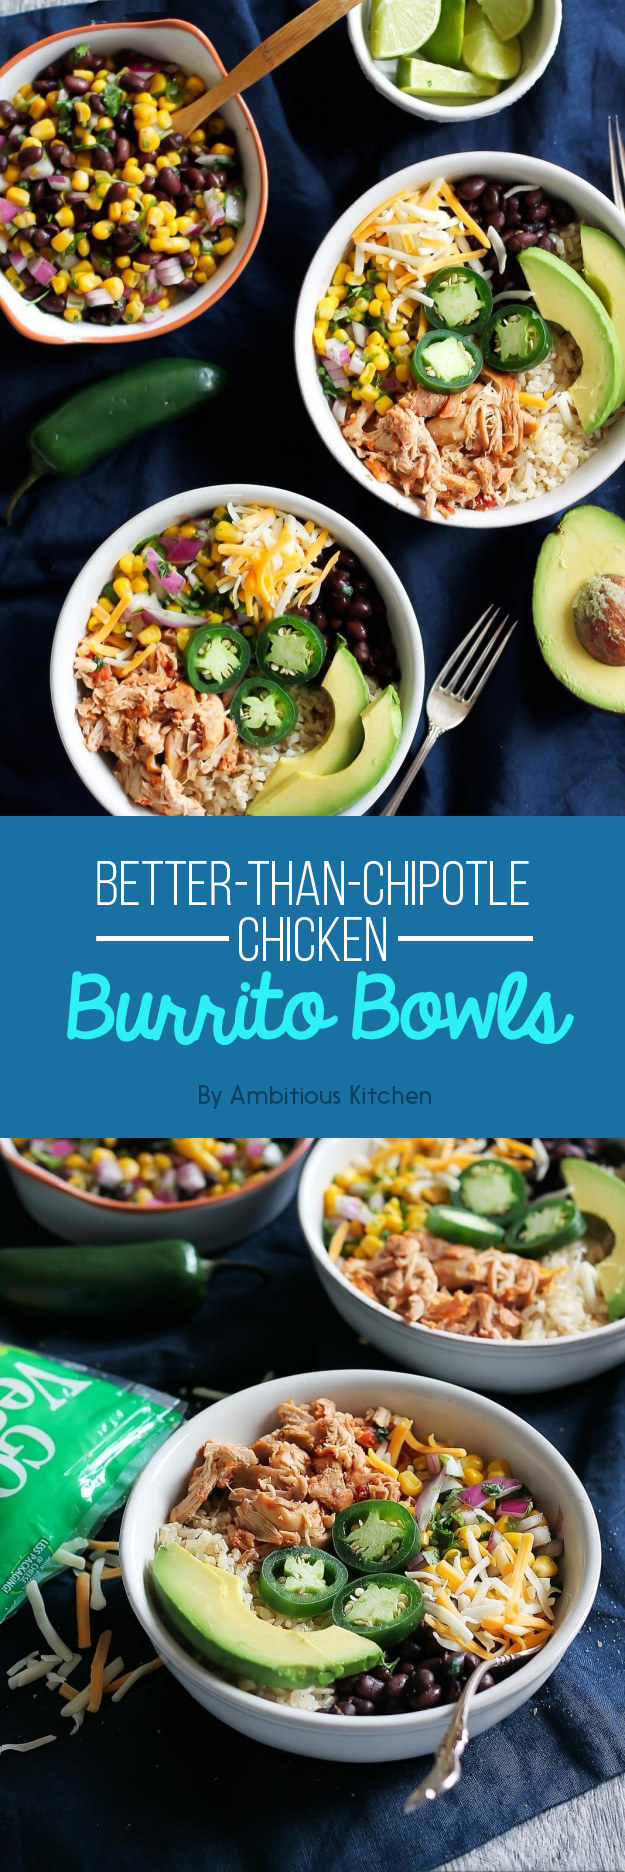 Better-Than-Chipotle Chicken Burrito Bowls